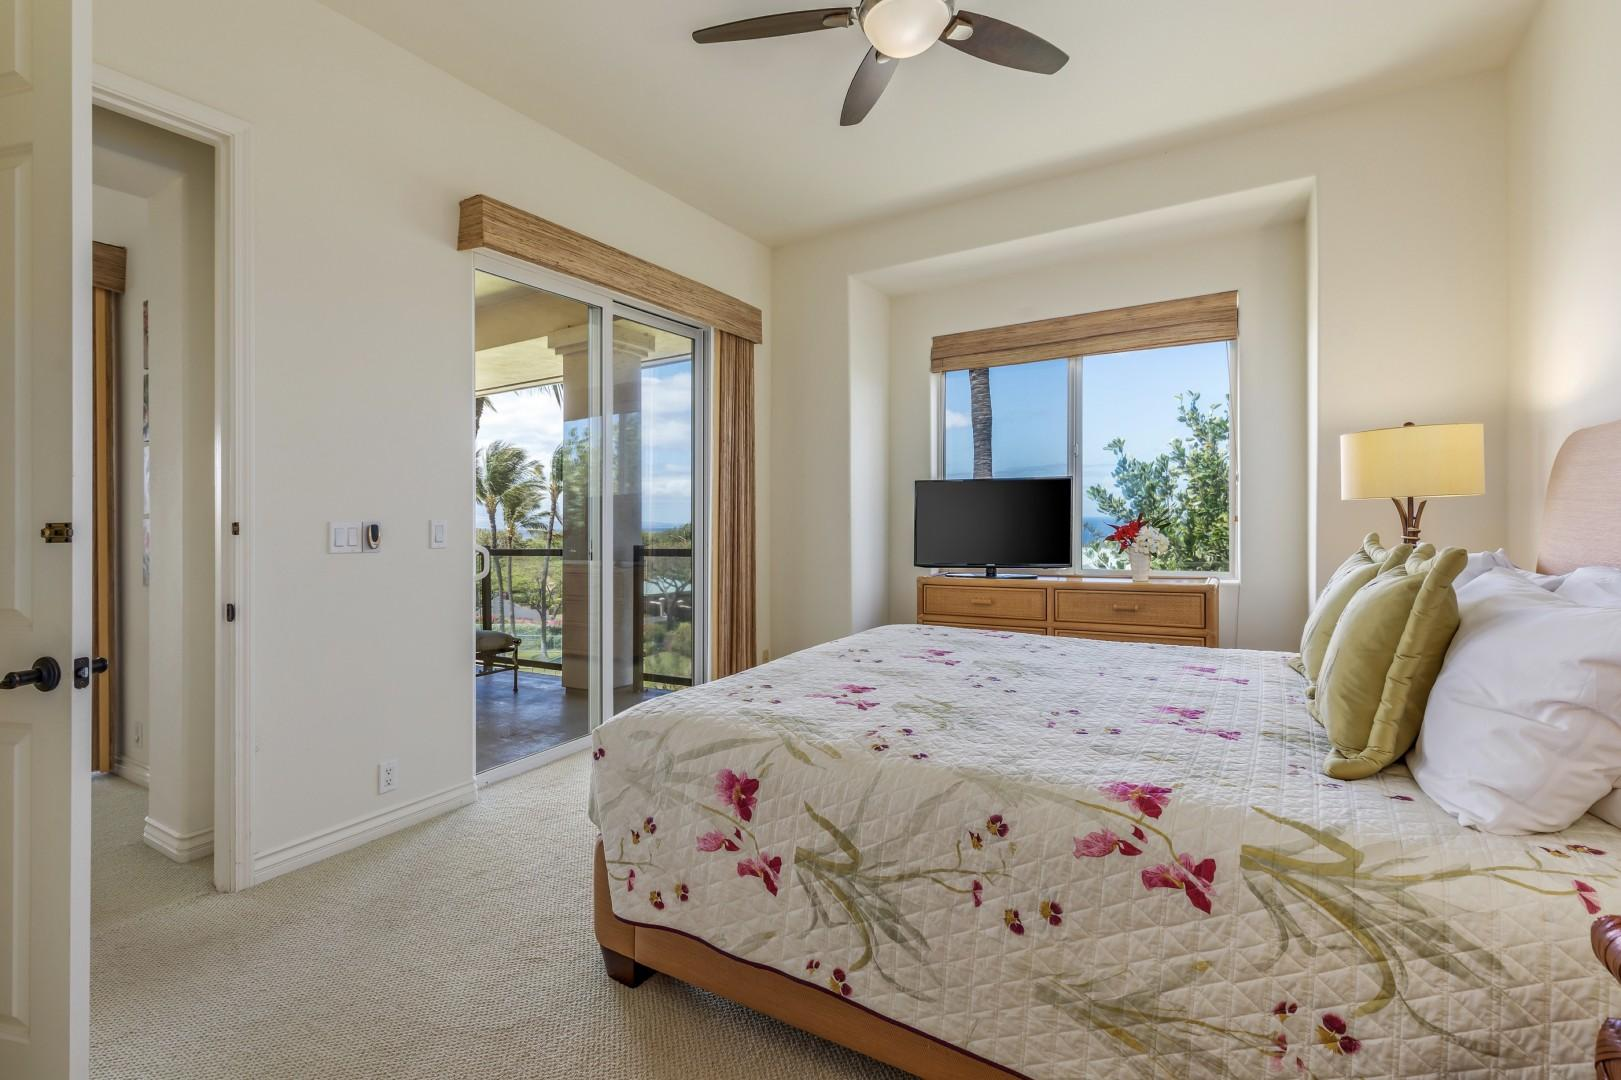 Spacious master bedroom with ocean views, lanai access and en suite bath.